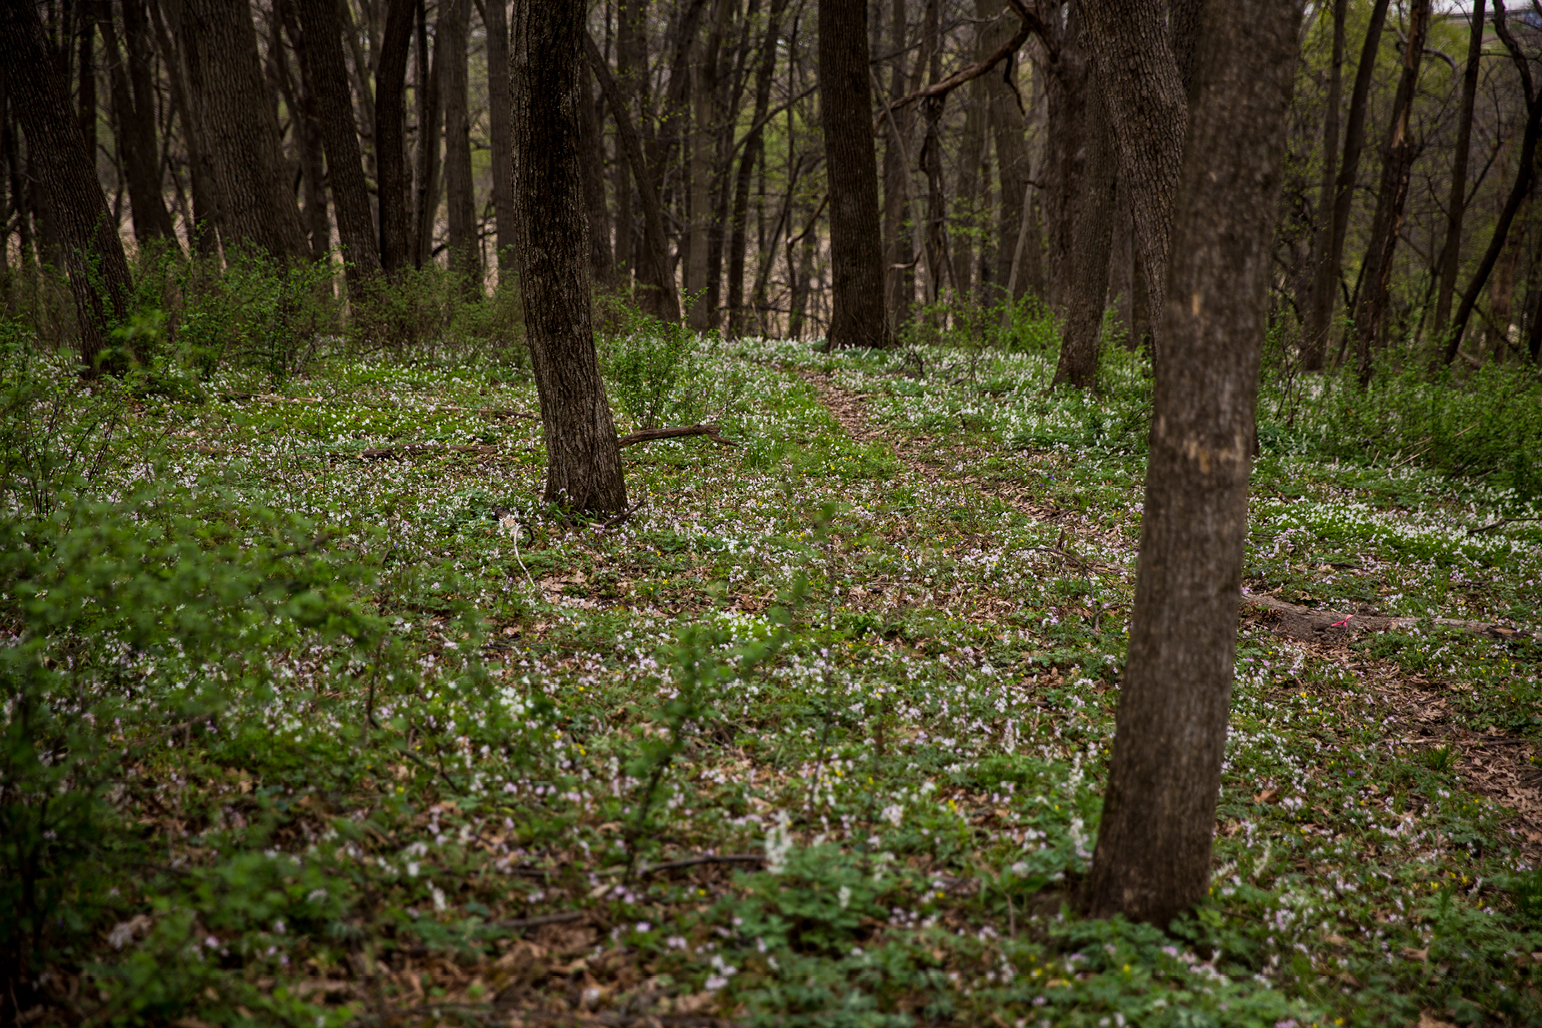 White flowers blooming in the spring